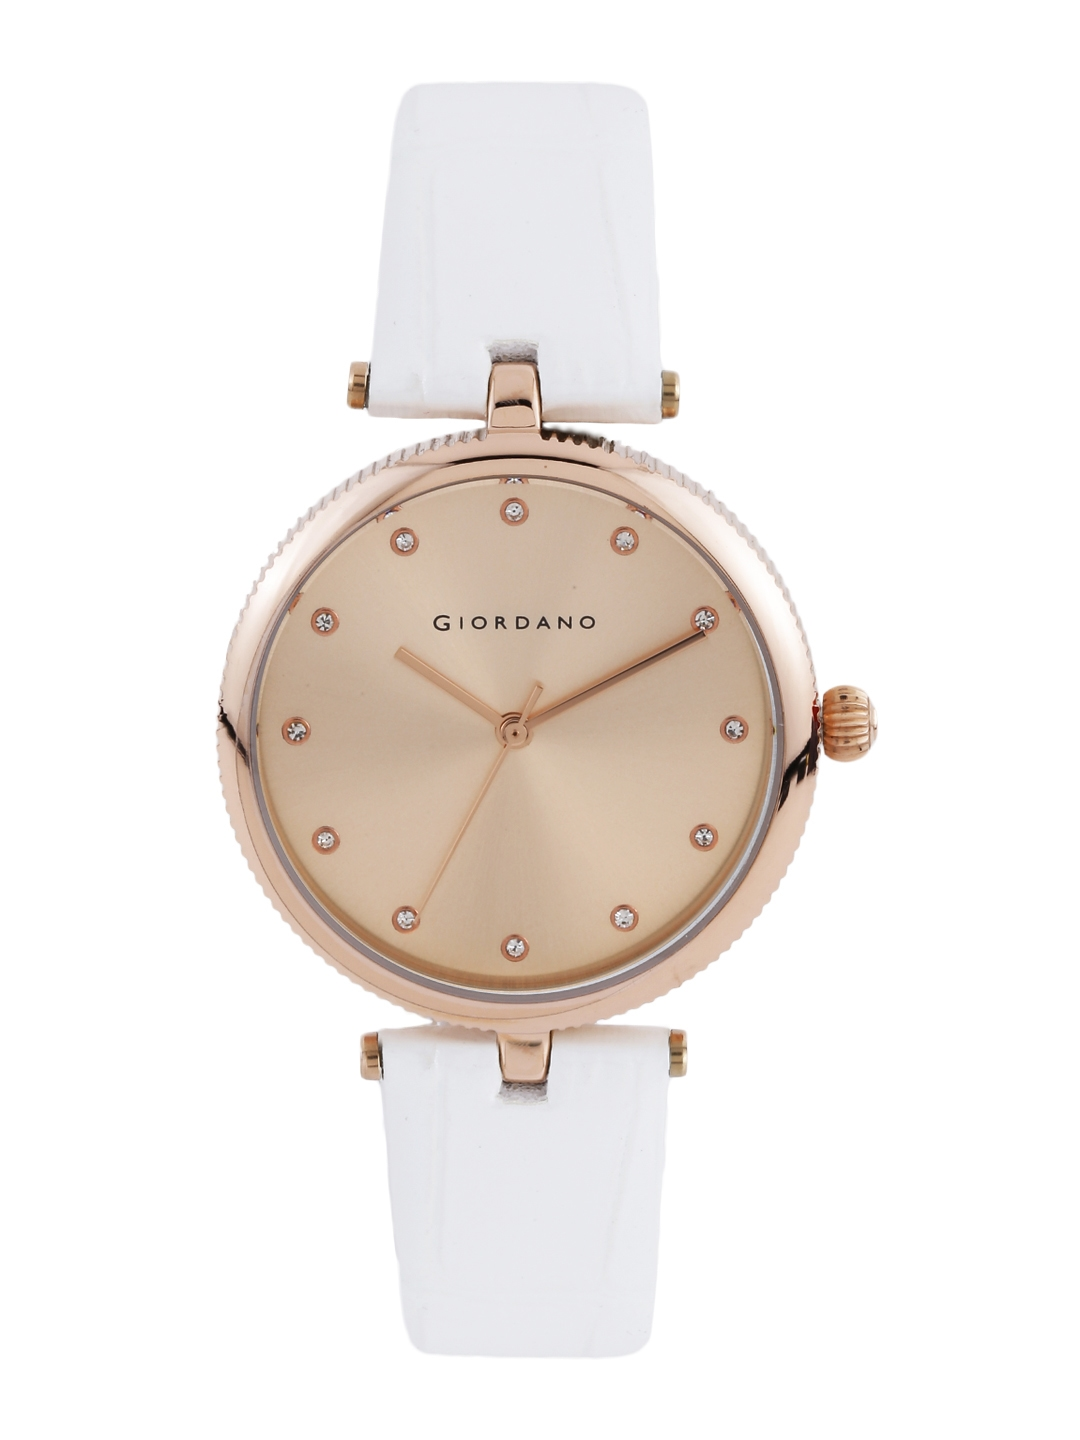 GIORDANO Women Rose Gold Toned Stone Studded Dial Watch A2038 08